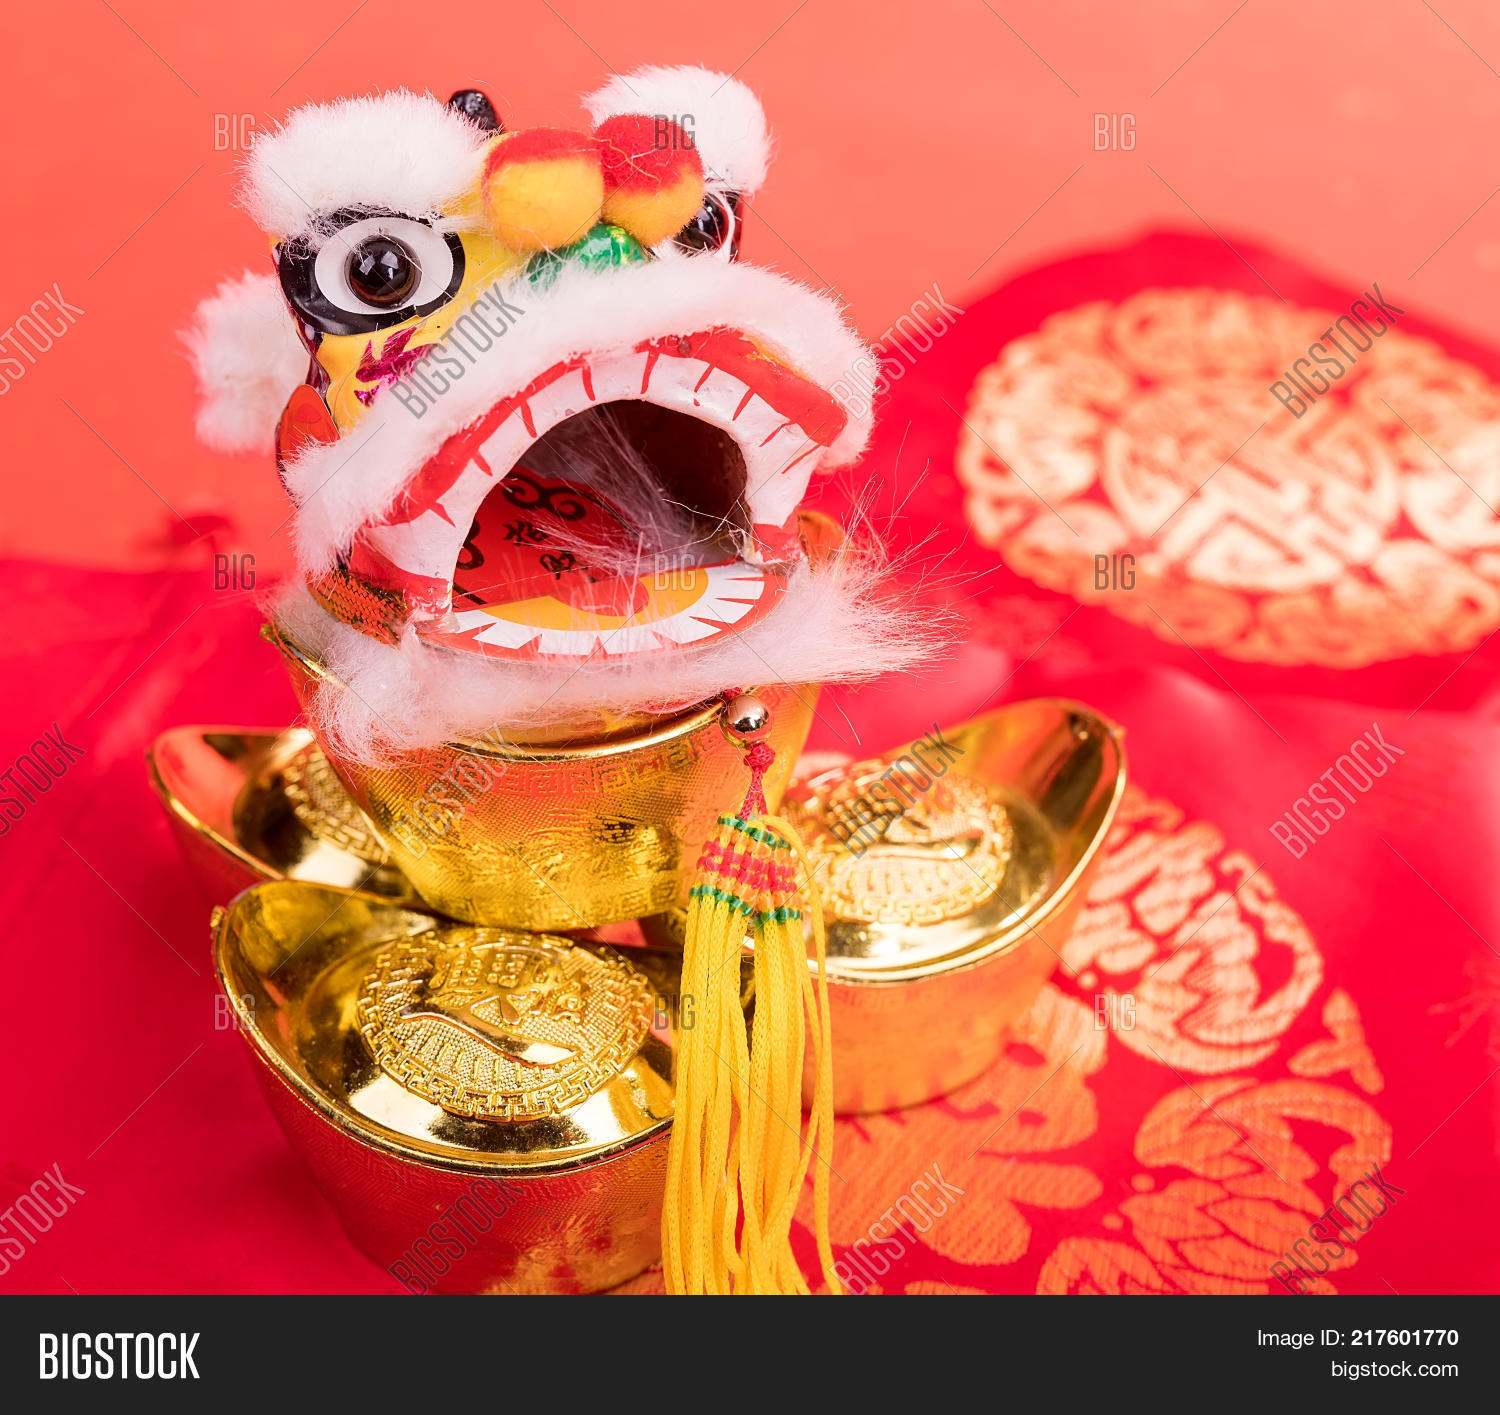 Chinese Traditional Image & Photo (Free Trial) | Bigstock